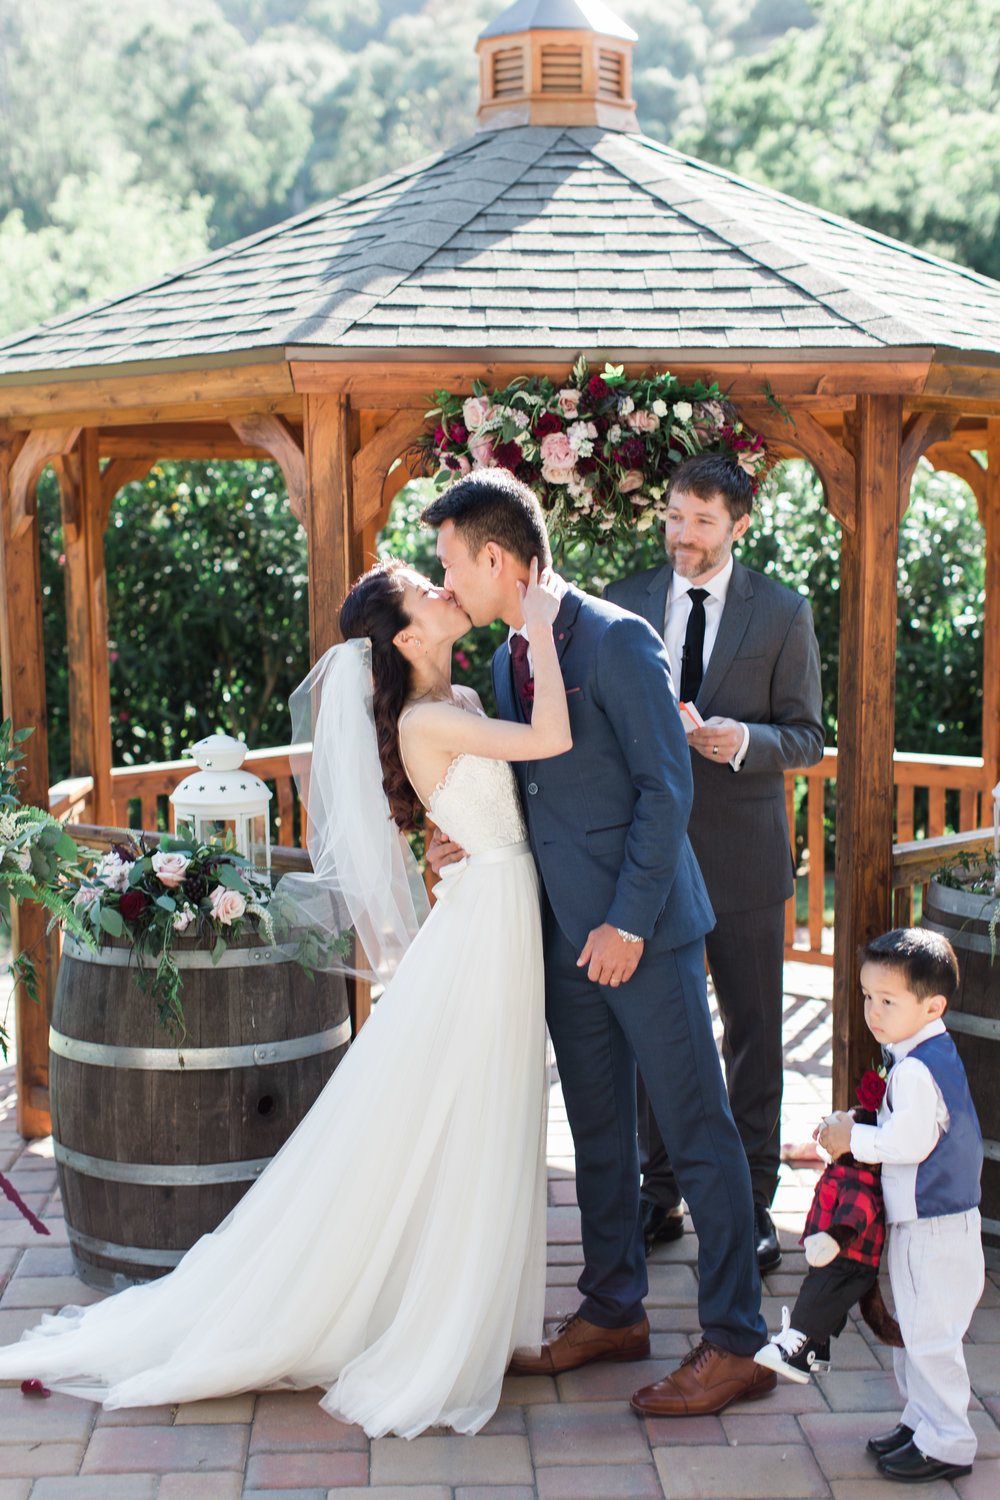 Romantic-wedding-Nella-Terra-Cellars-in-Sunol-California-22.jpg